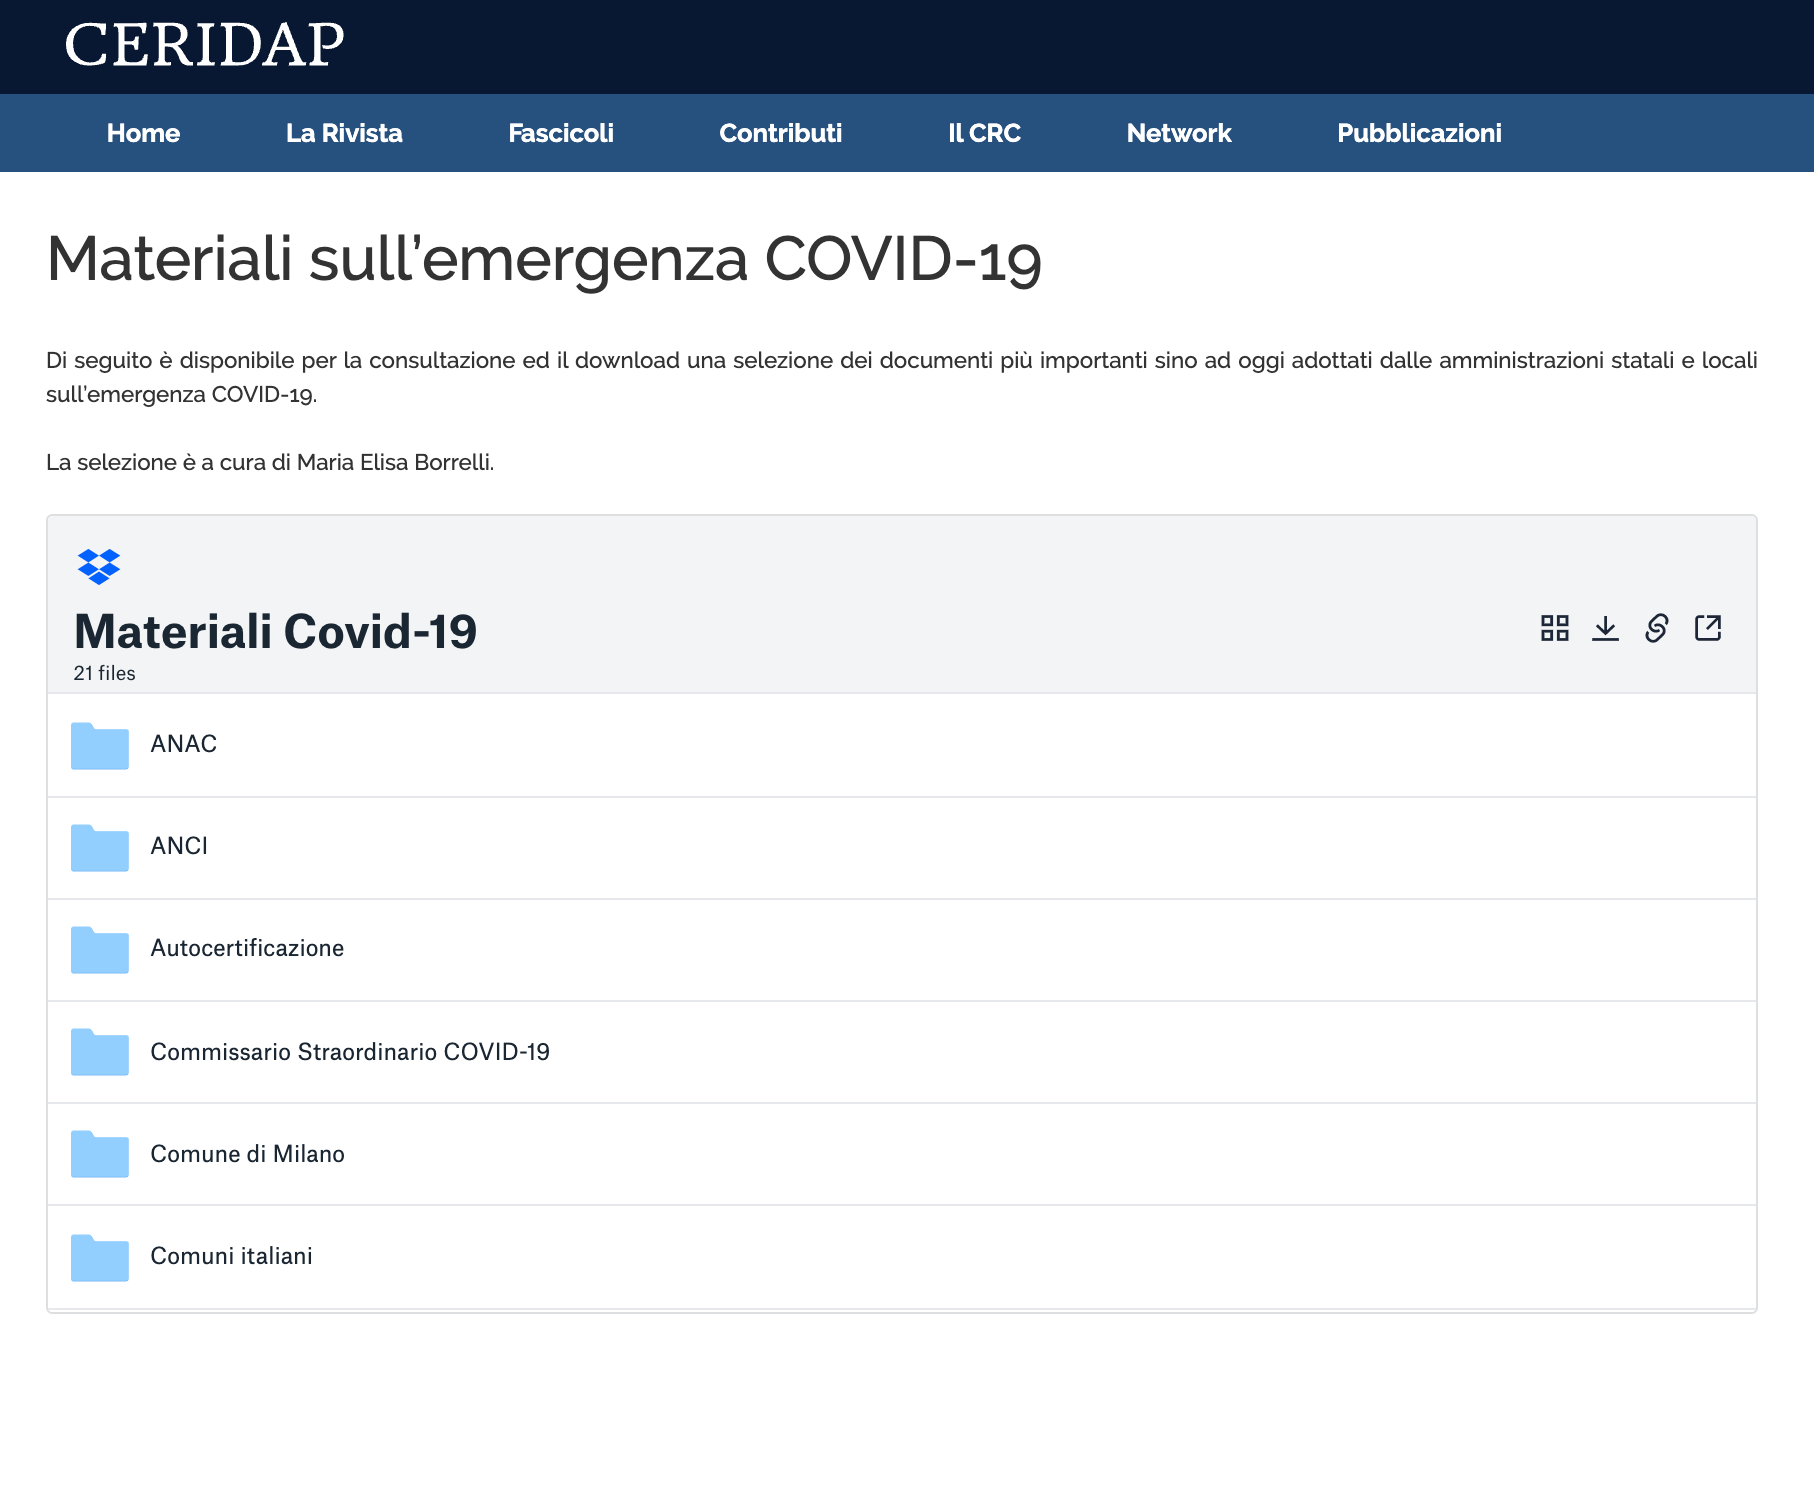 Screenshot of the Embedder being used by CERIDAP to distribute pandemic resources